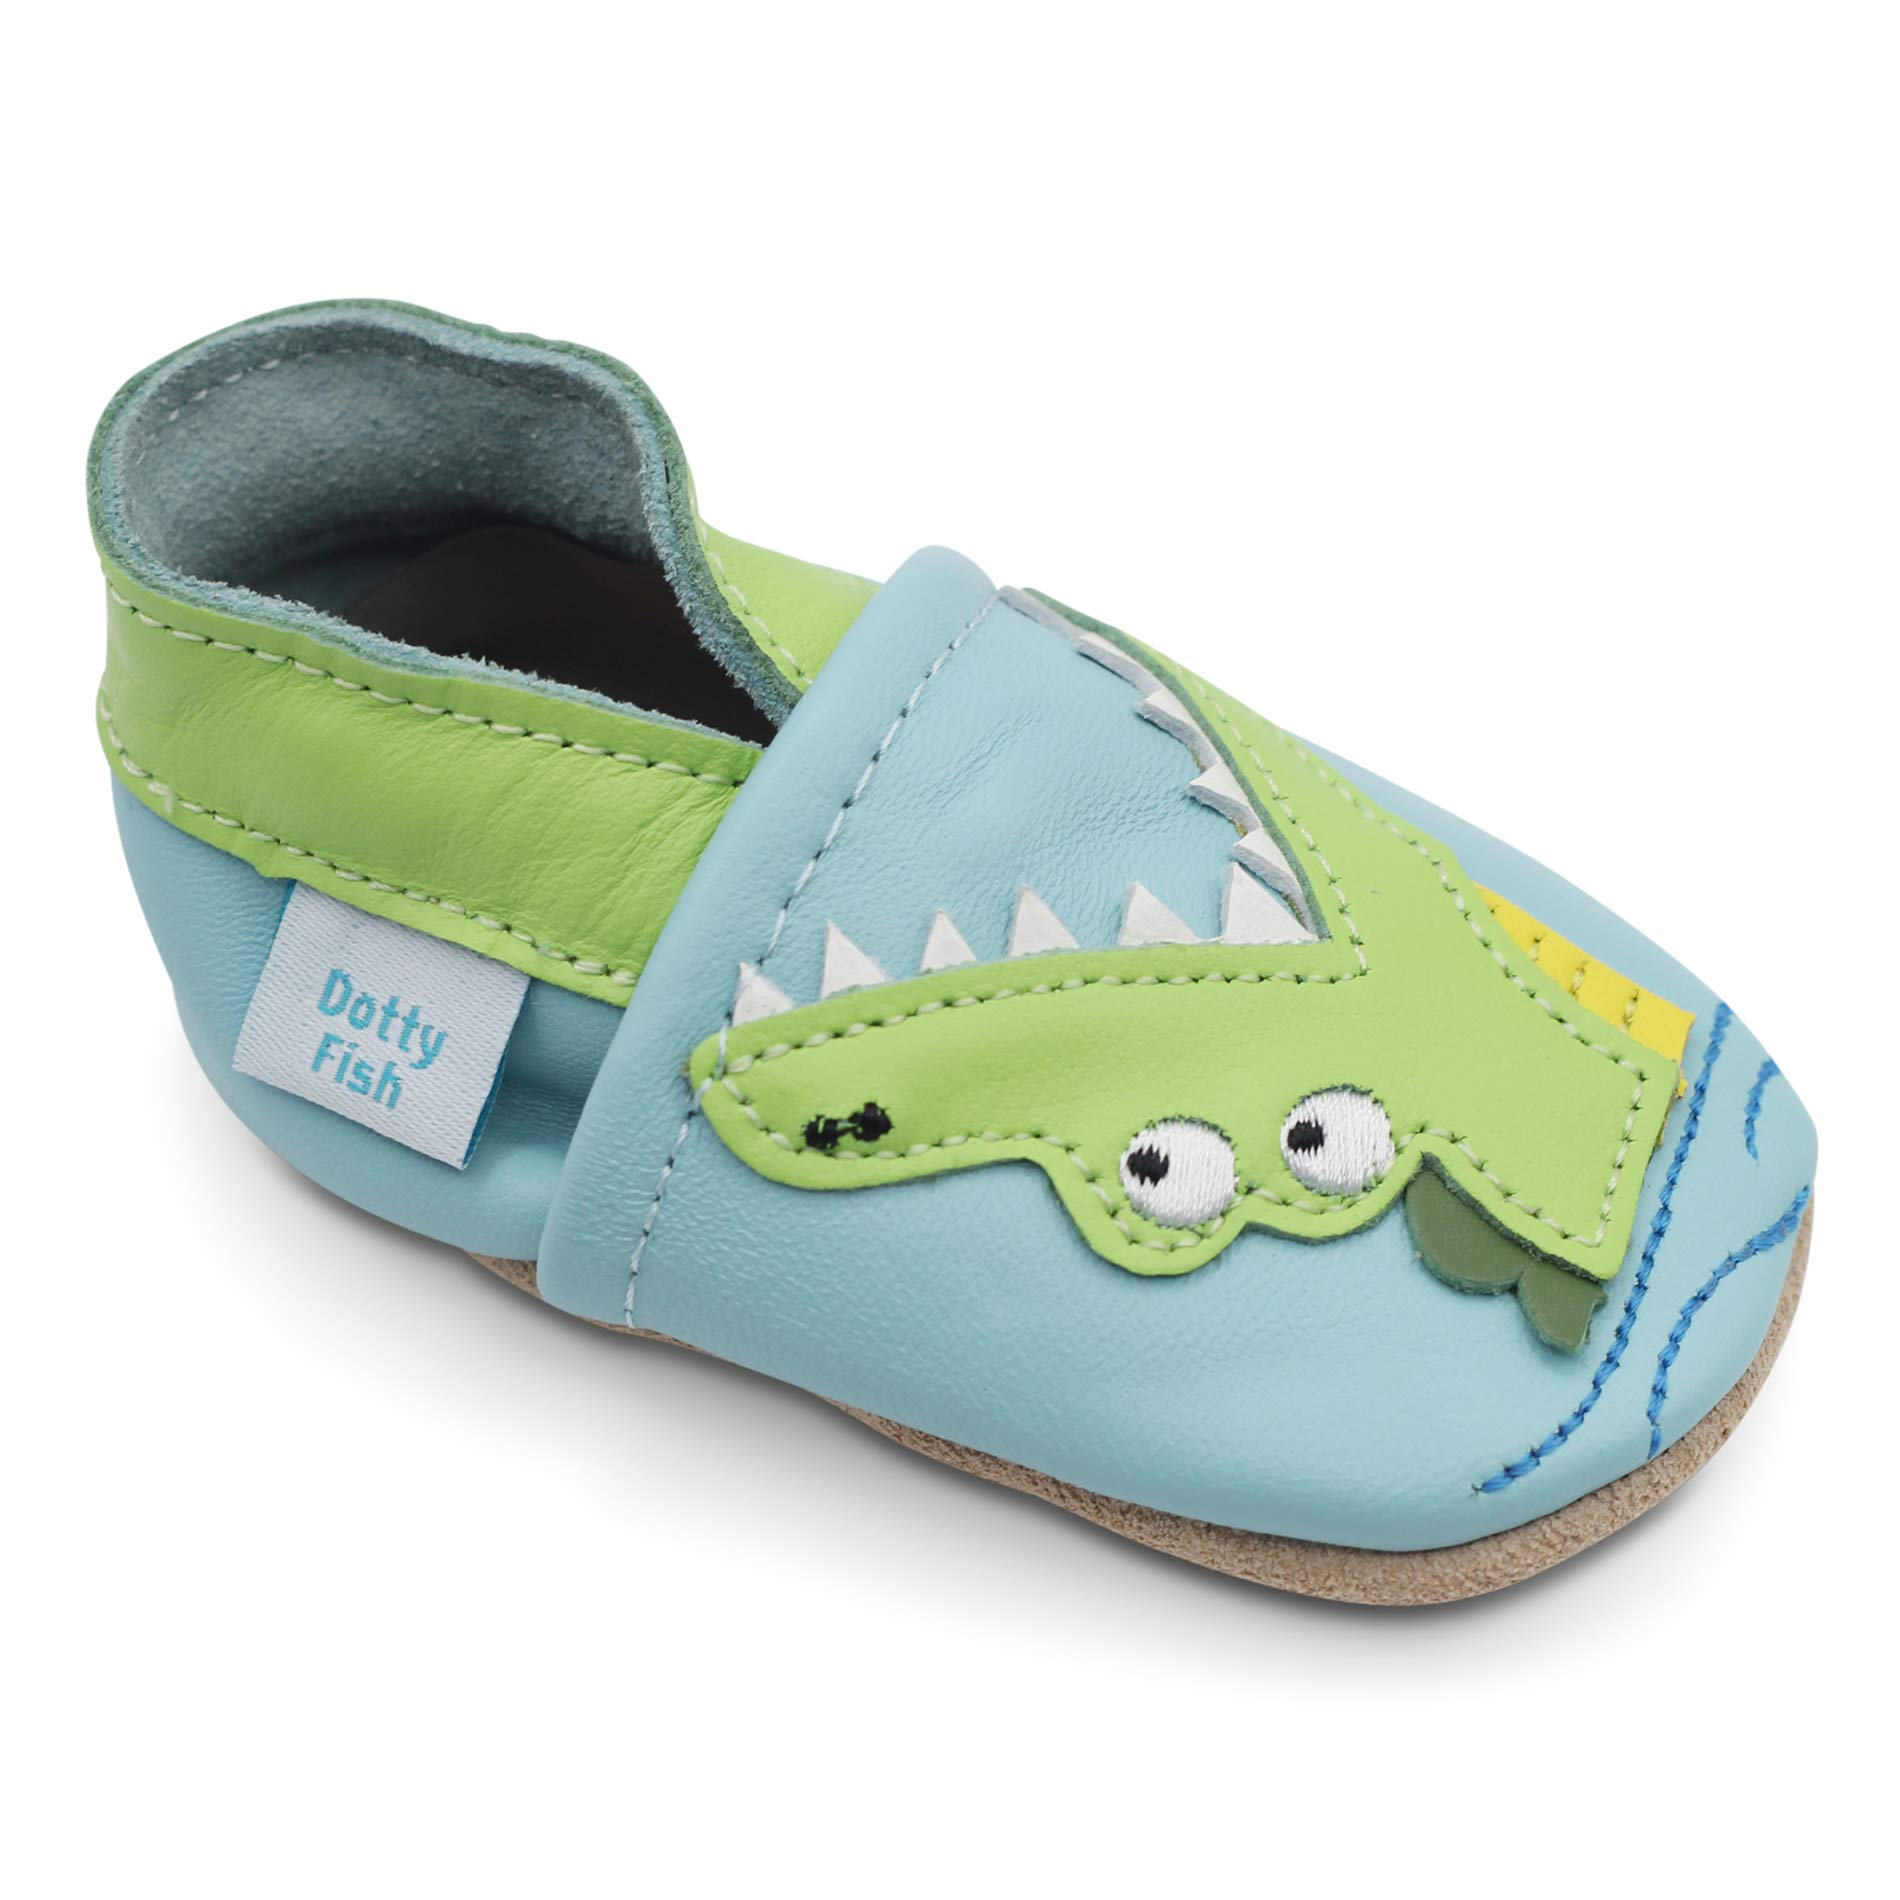 Dotty Fish Soft Leather Boys Toddler Shoes. Green Crocodile. 2-3 Years (US8.5) by Dotty Fish